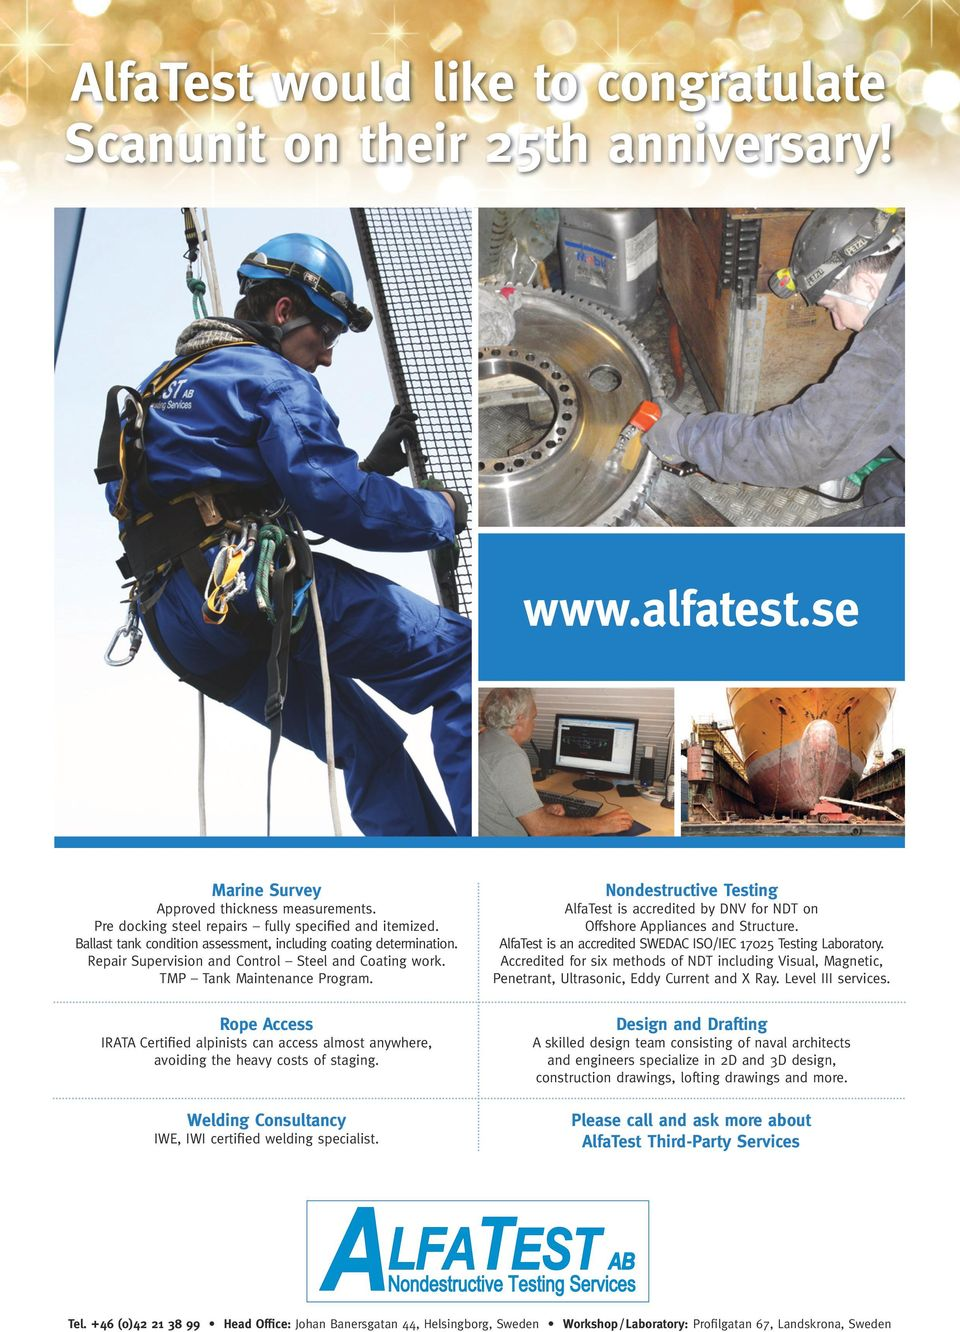 Rope Access IRATA Certified alpinists can access almost anywhere, avoiding the heavy costs of staging. Welding Consultancy IWE, IWI certified welding specialist.